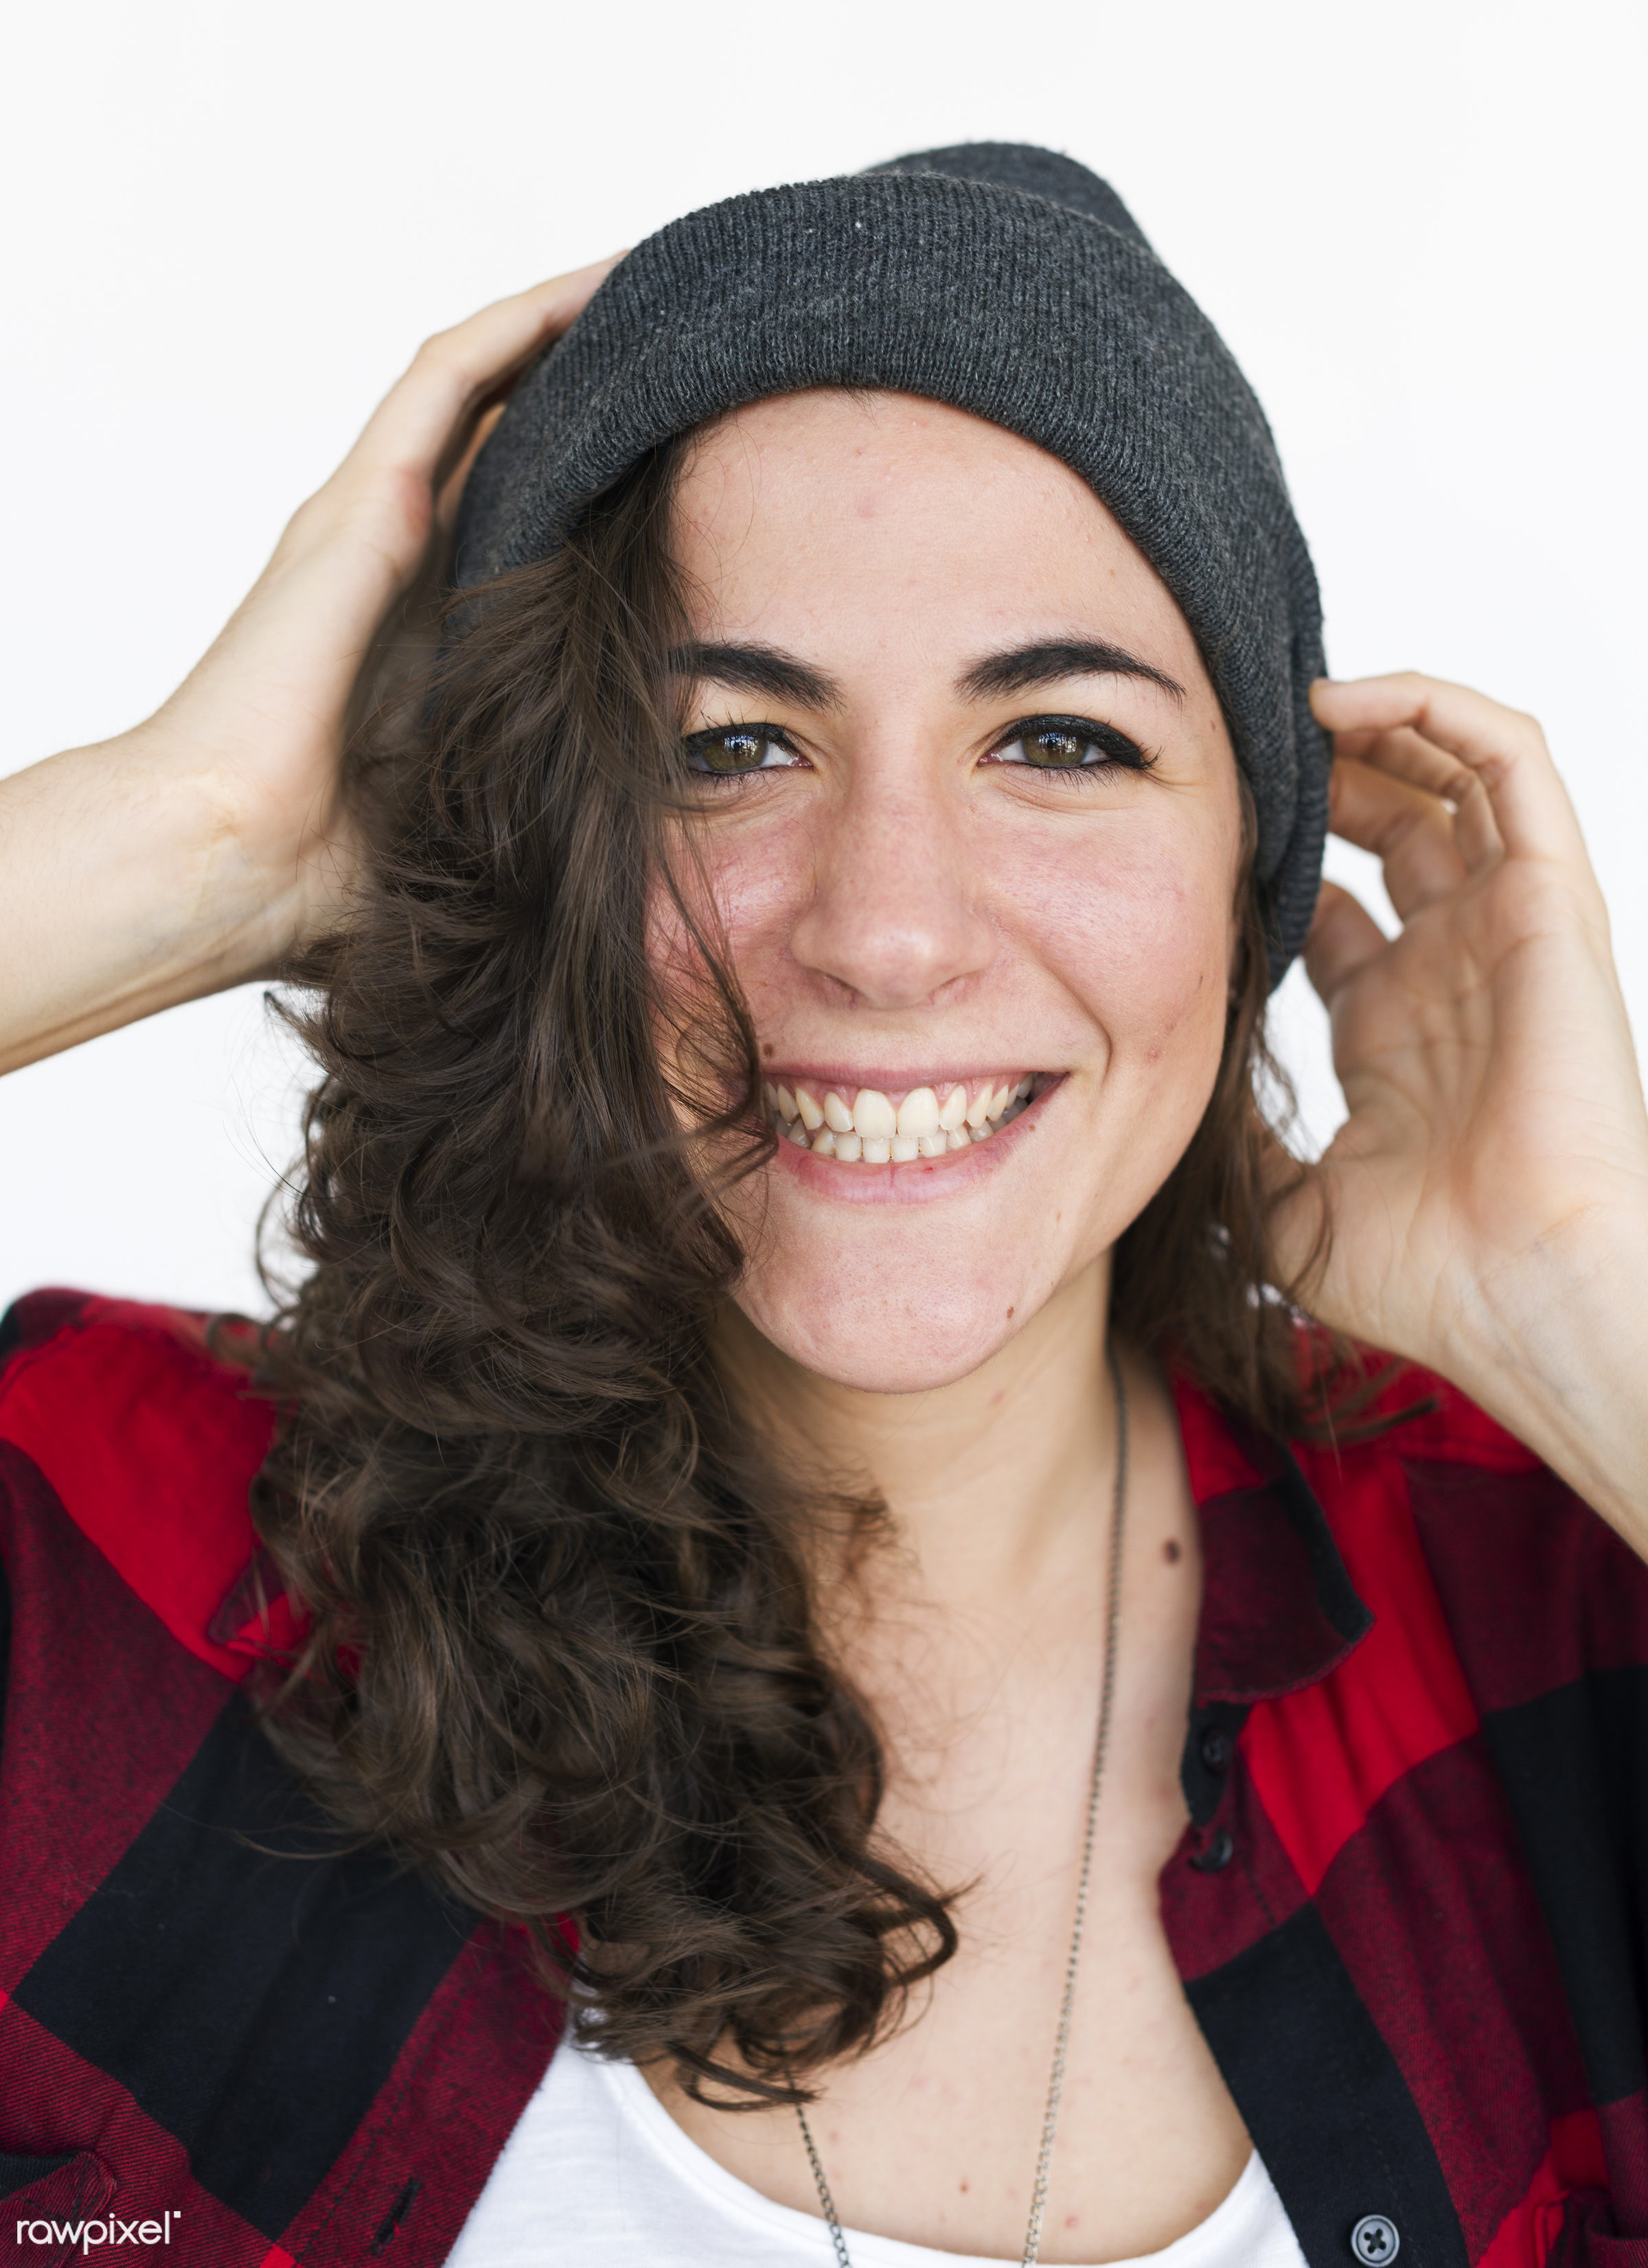 studio, expression, person, beanie, people, woman, smile, cheerful, smiling, isolated, white, happiness, portrait, emotion,...